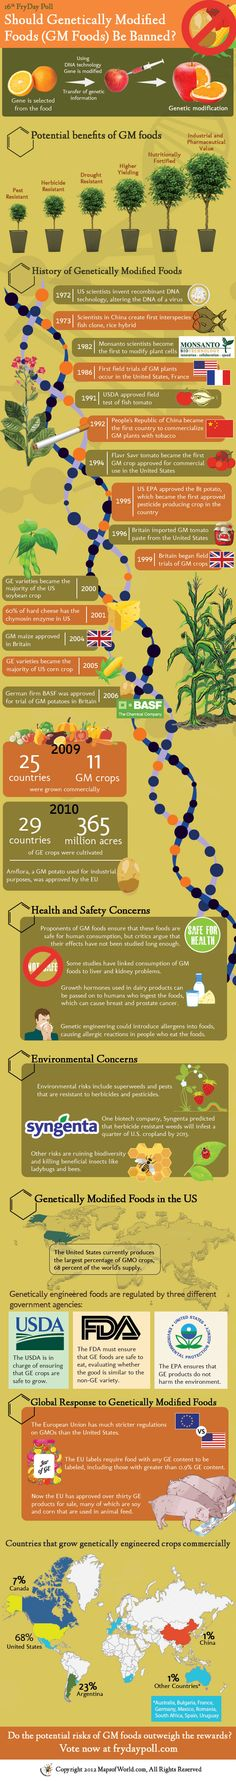 Should GMOs be banned?